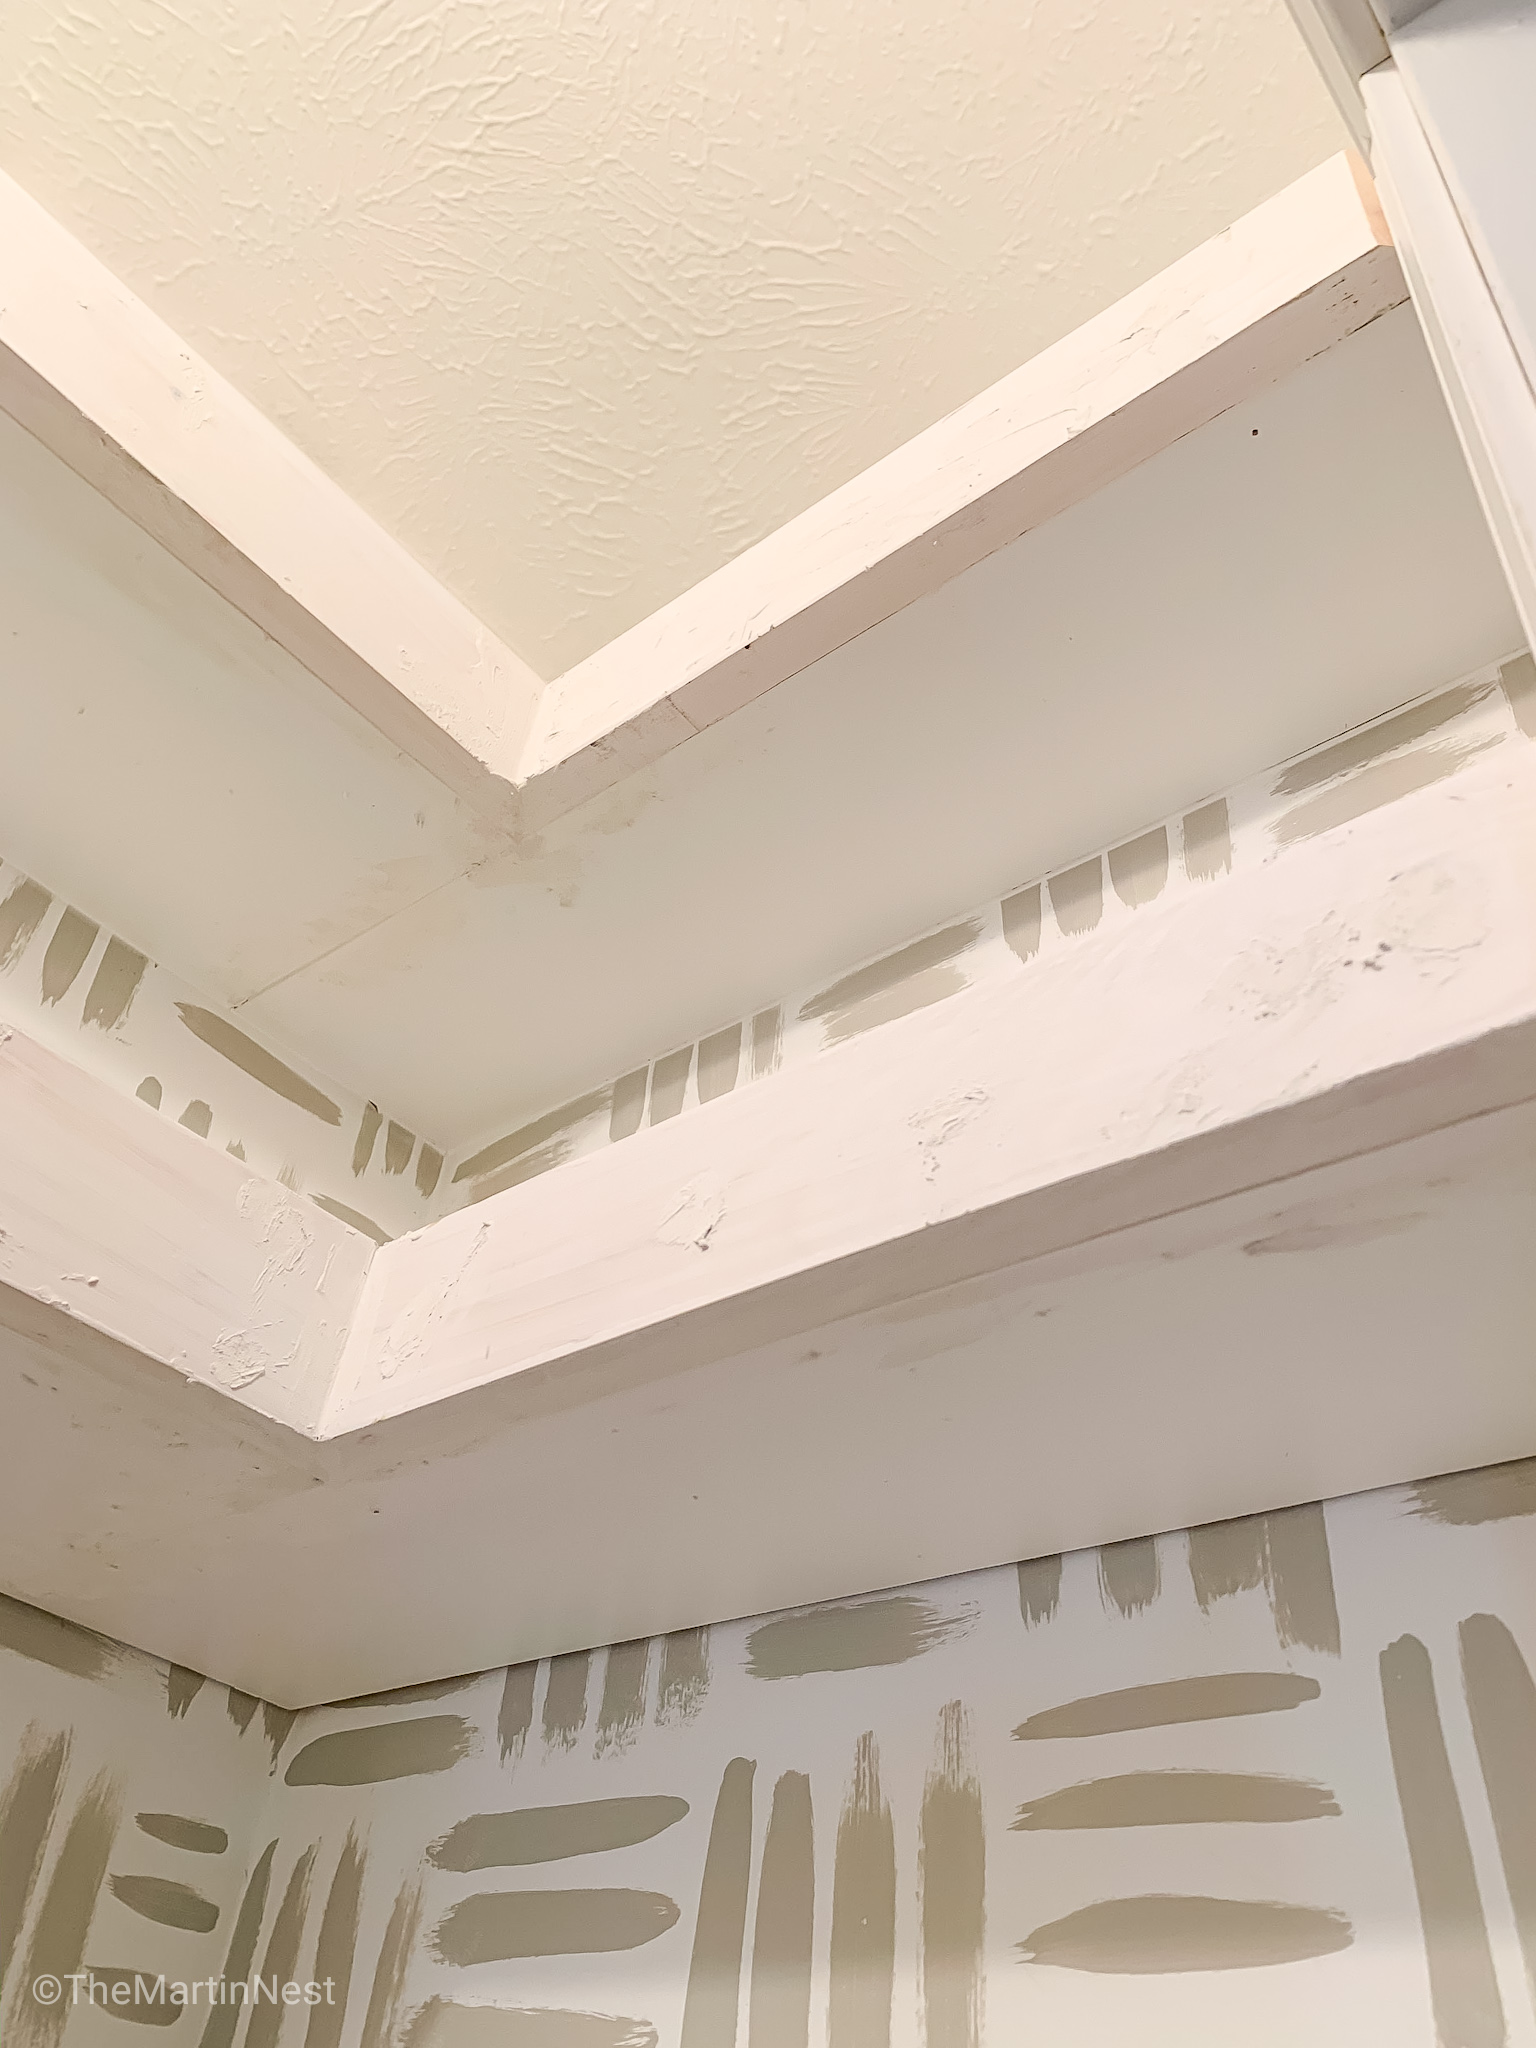 Caulk and Wood filler to finish DIY floating Shelves